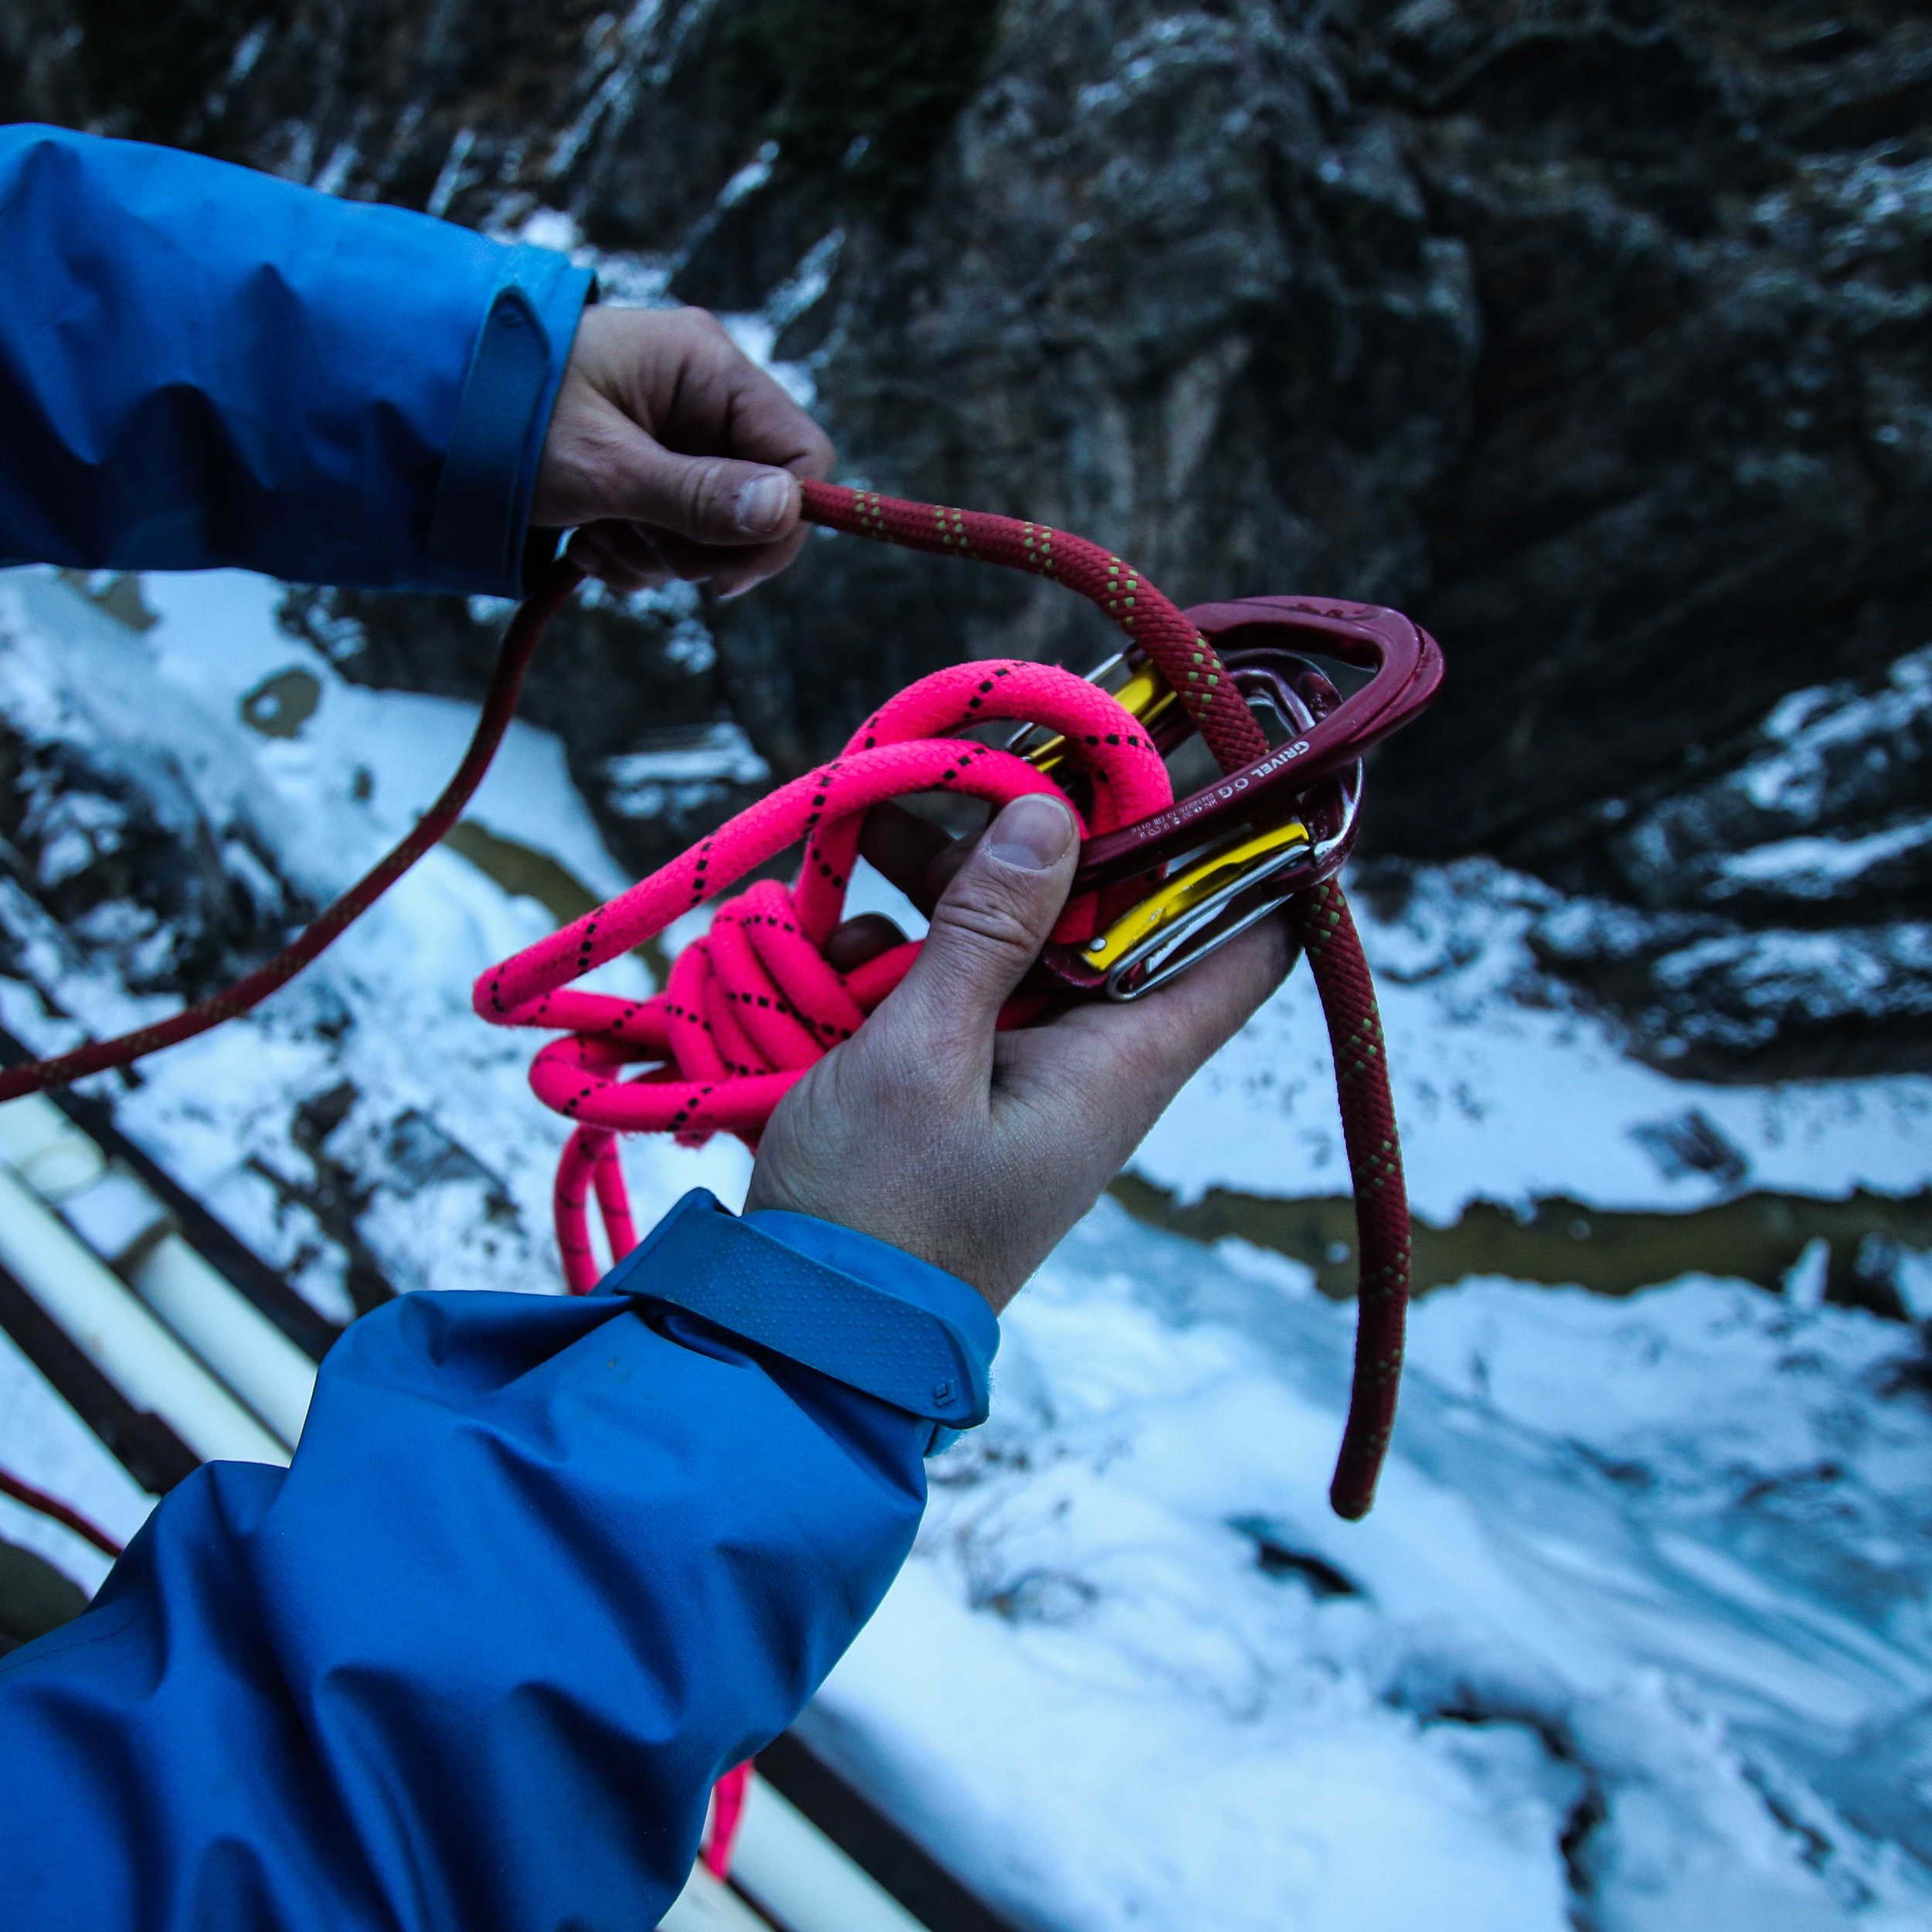 11. Set your climbing rope through the two carabiners at the anchor focal point -